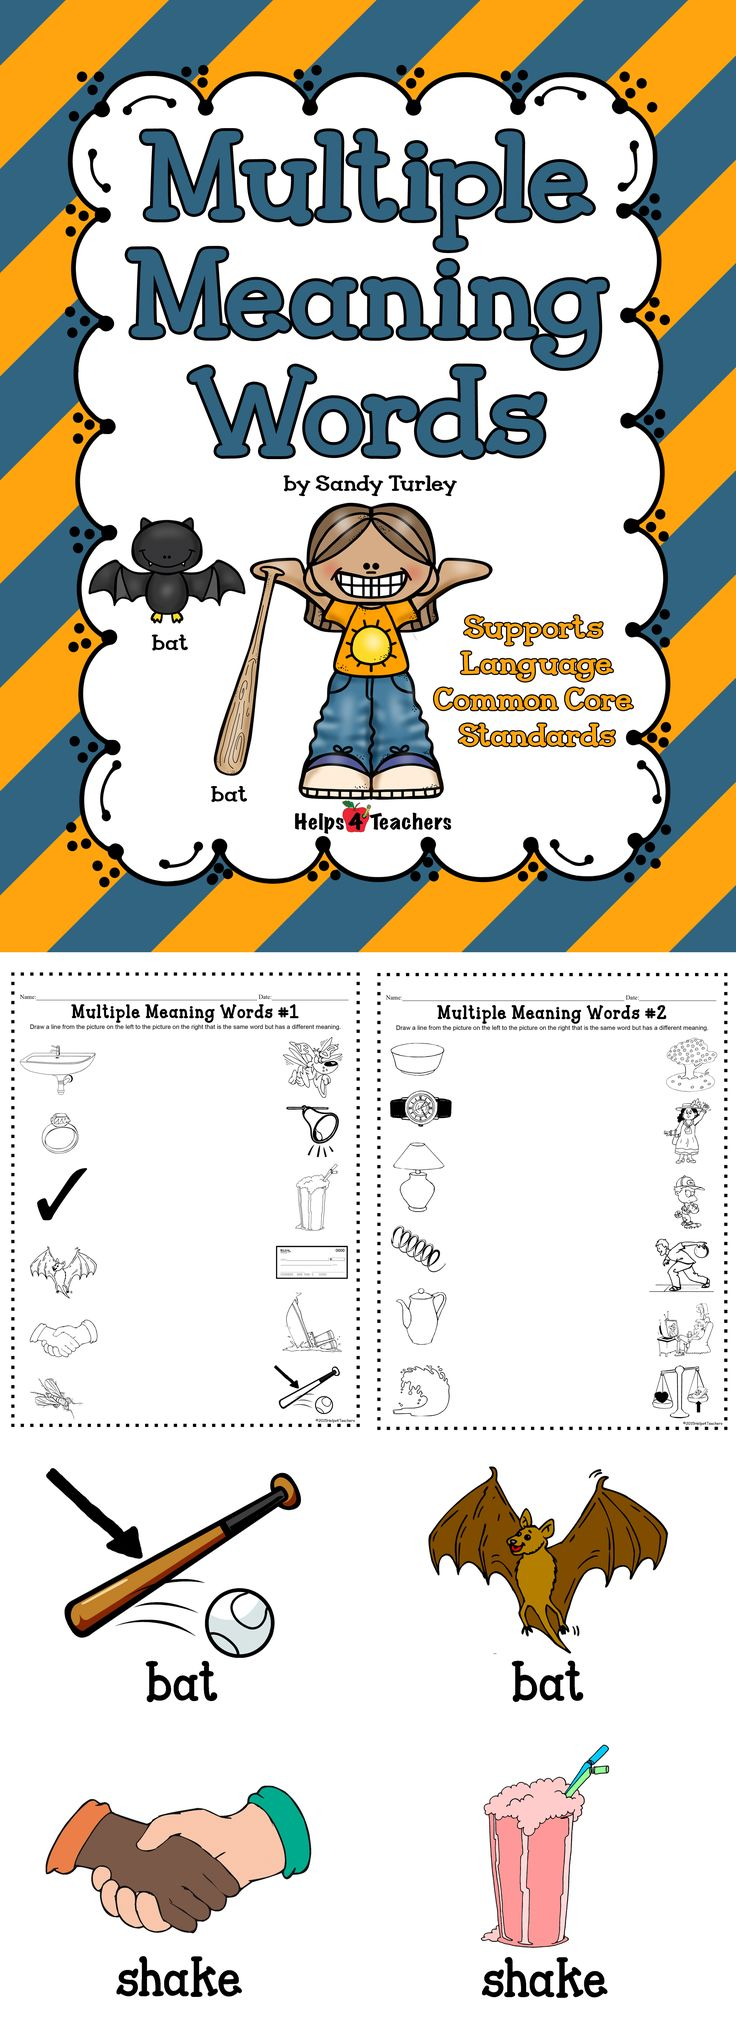 This packet includes:  - Two Multiple Meanings activity/assessment sheets - 24 colored pictures of words that have multiple meanings  Supports Common Cores Standards: Language K.4, 1.4, 2.4